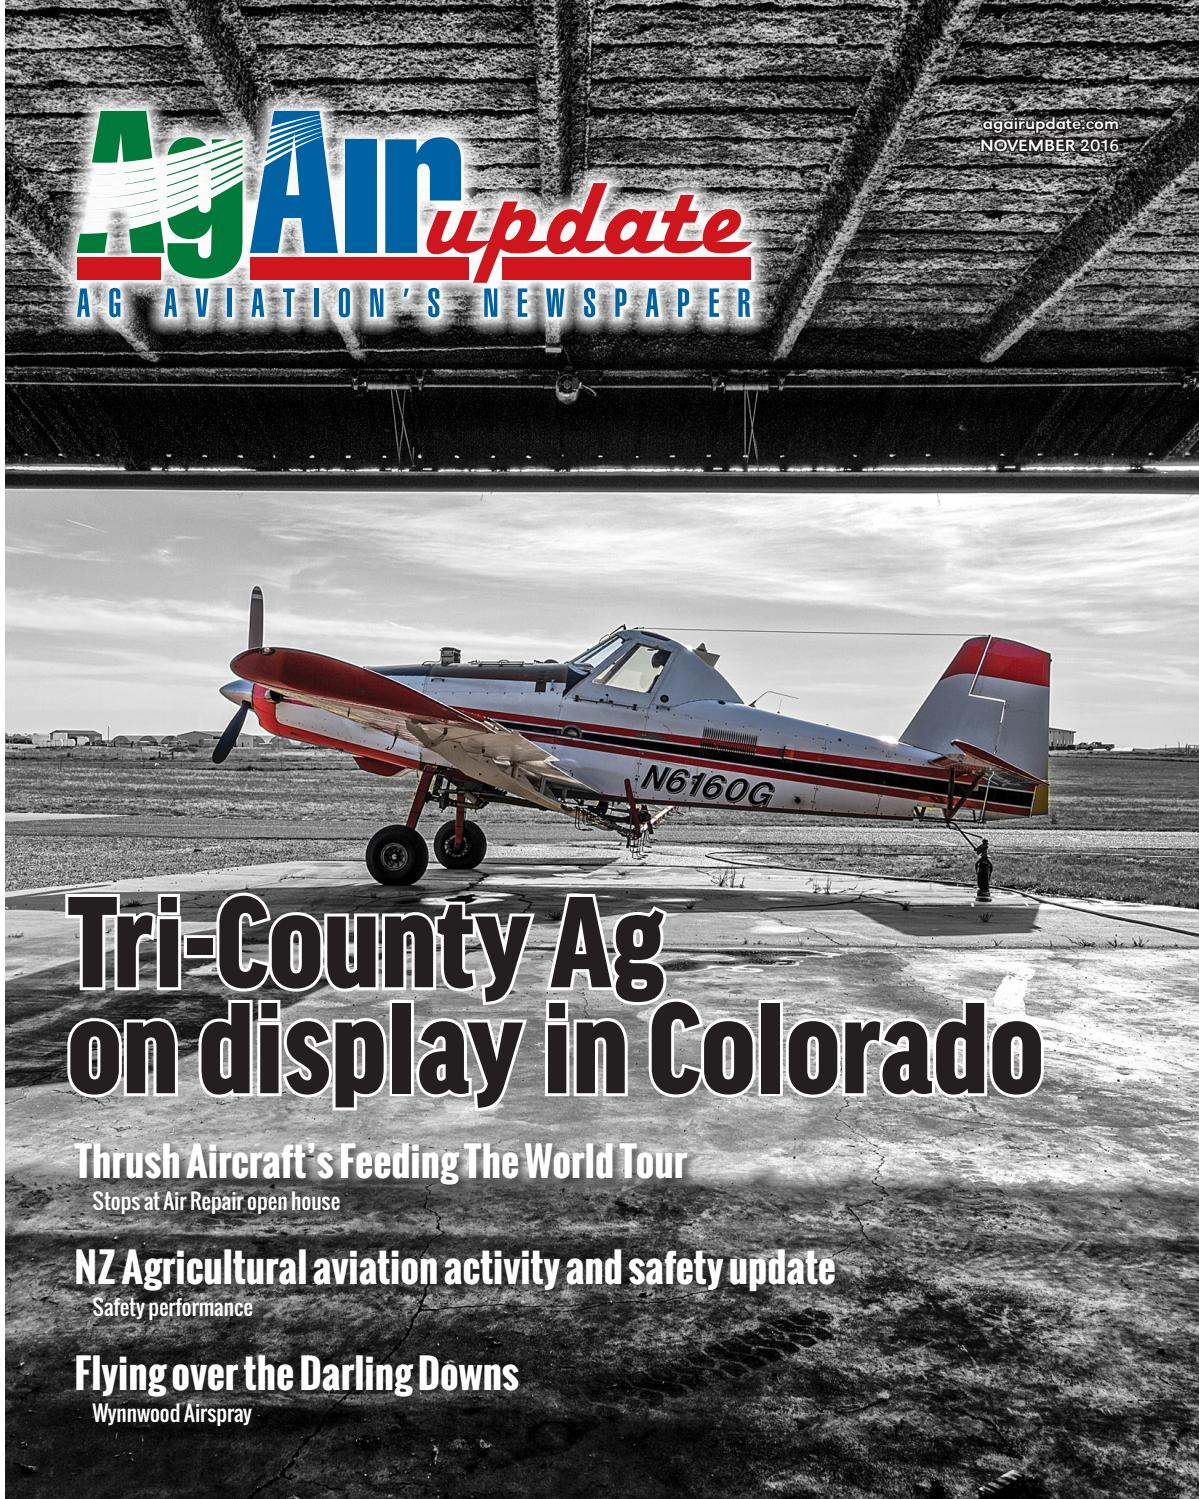 Novmeber 2016 Us Edition In English By Agair Update Issuu Connecting 781 To Remote Start With Onboard Relays Gm Transponder Pk3